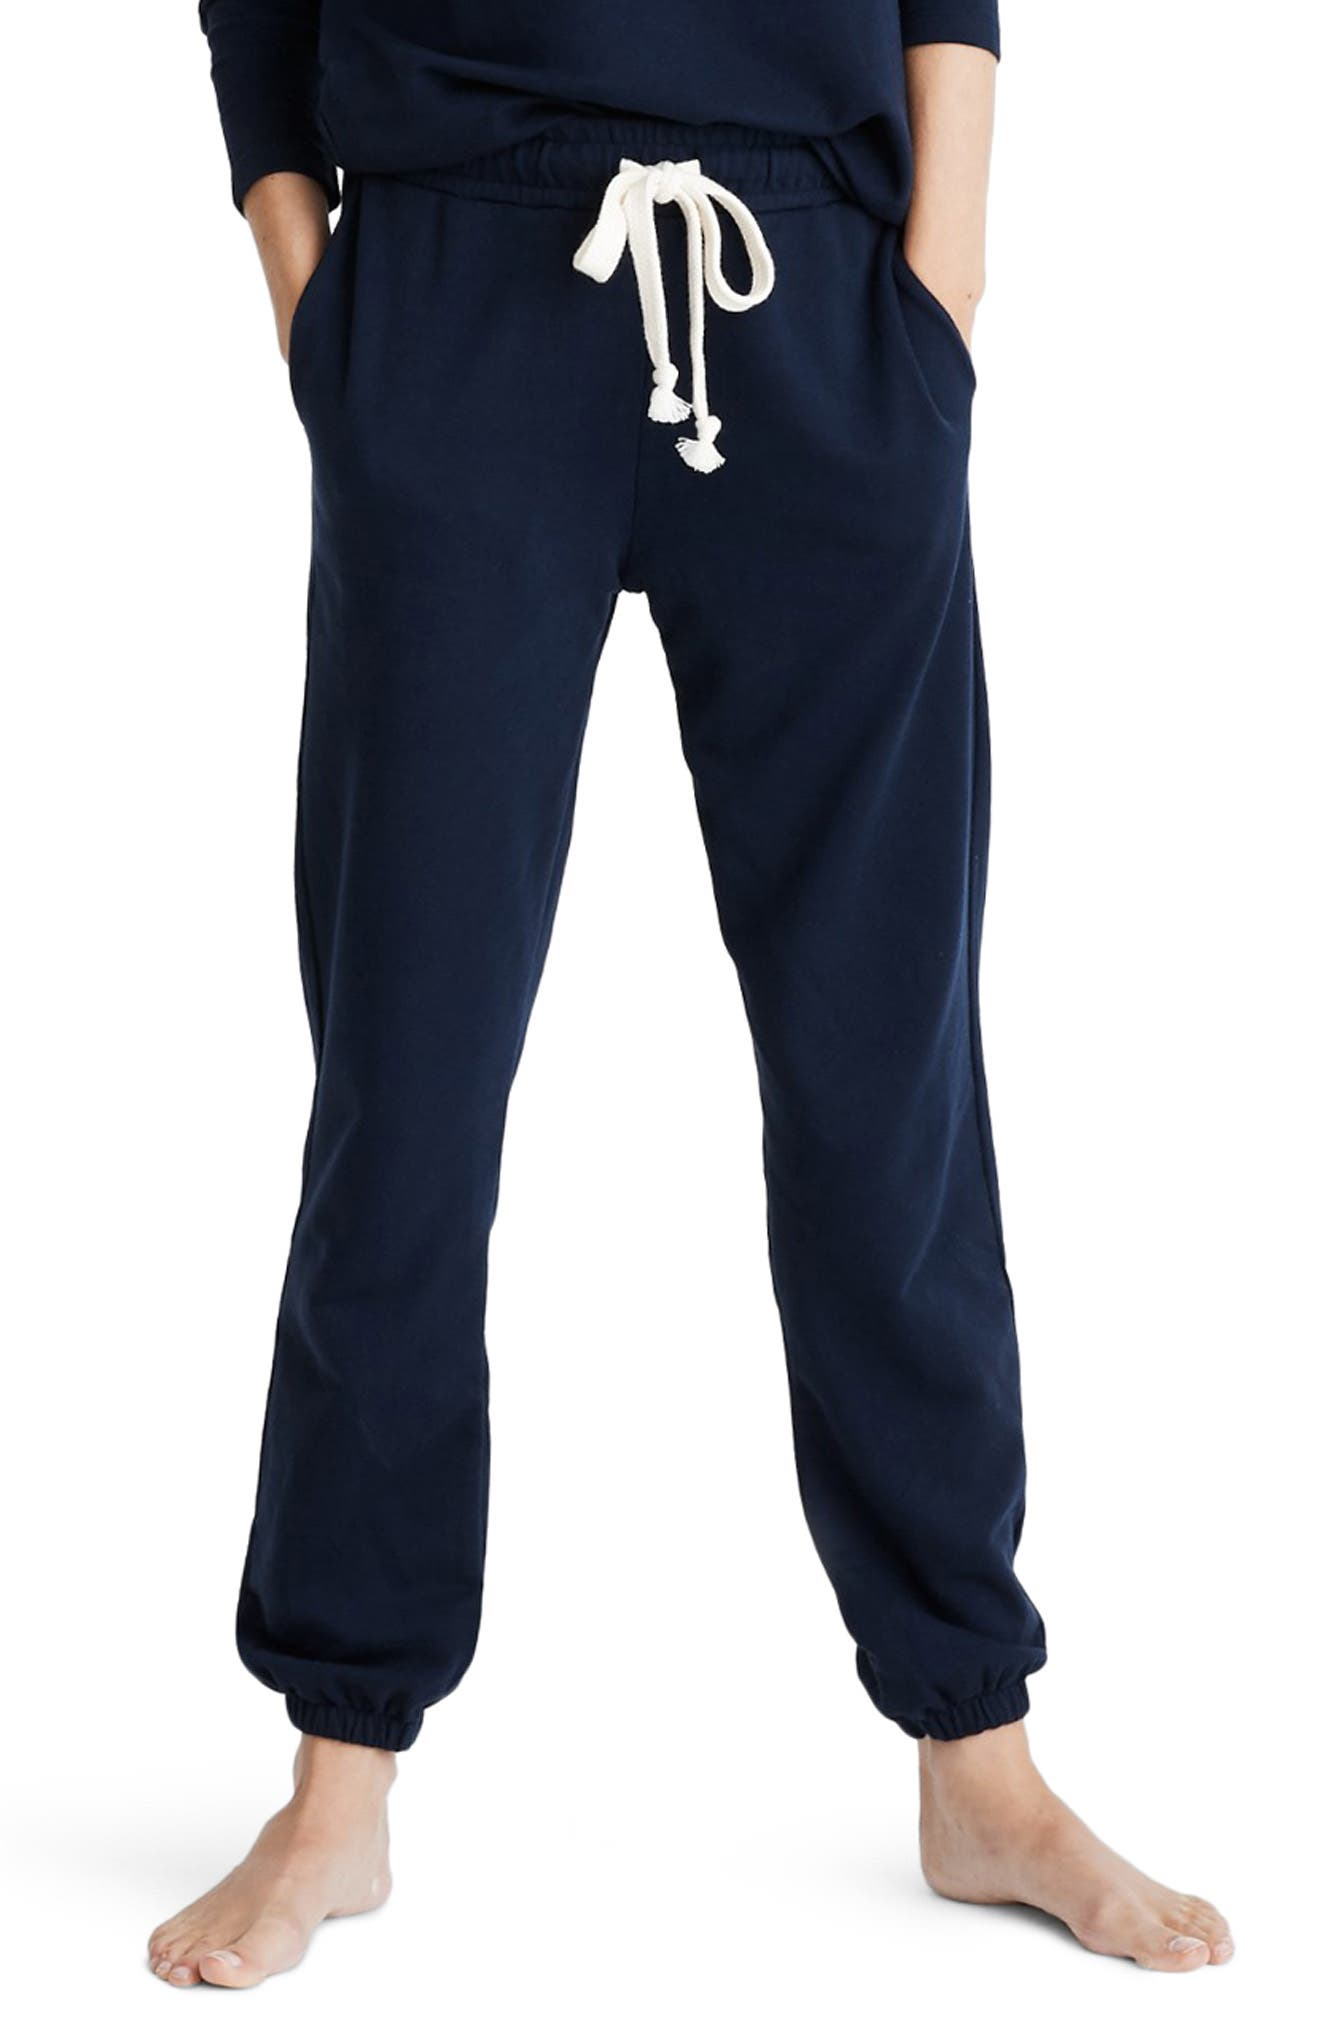 Women's Madewell Pajama Sweatpants